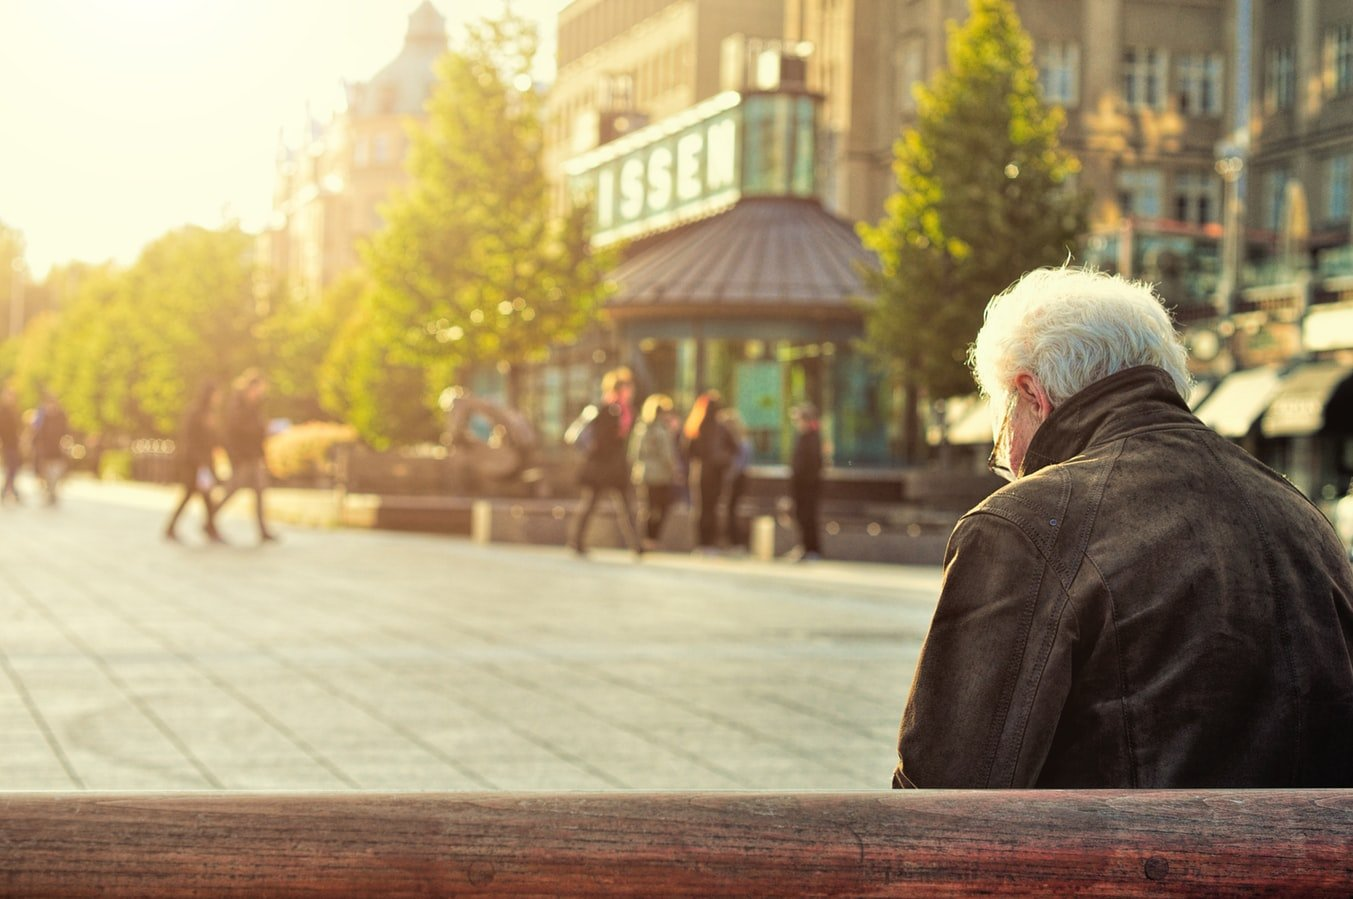 an elderly man sitting alone on a bench